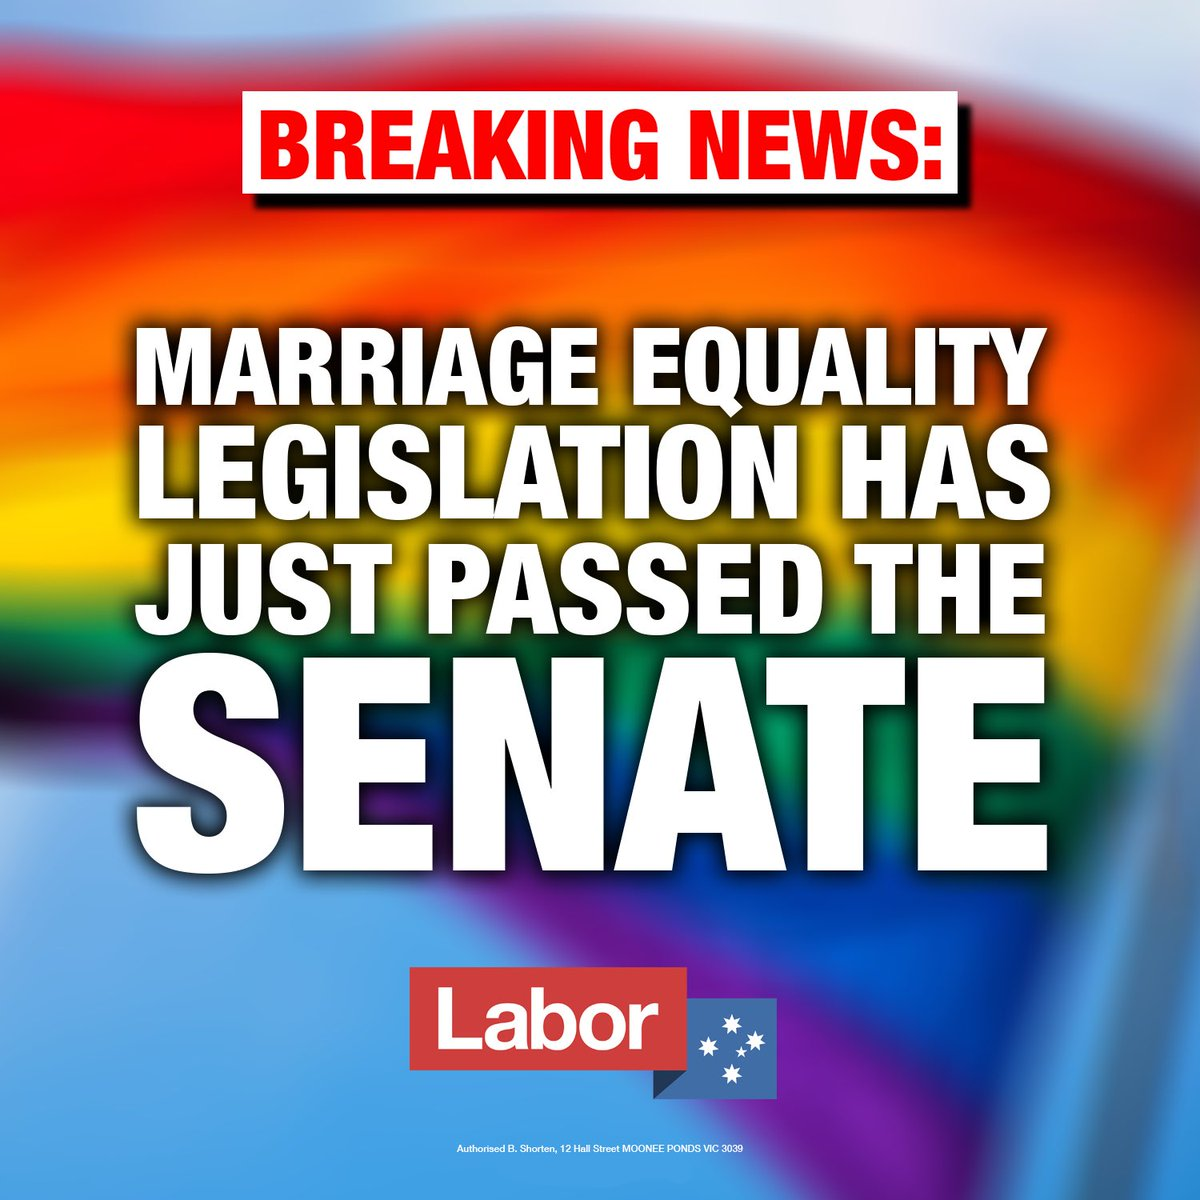 The people said Yes.  The Senate said Yes.  Now it's time for the House of Reps to finally do its job and make marriage equality a reality.  Let's get this done.